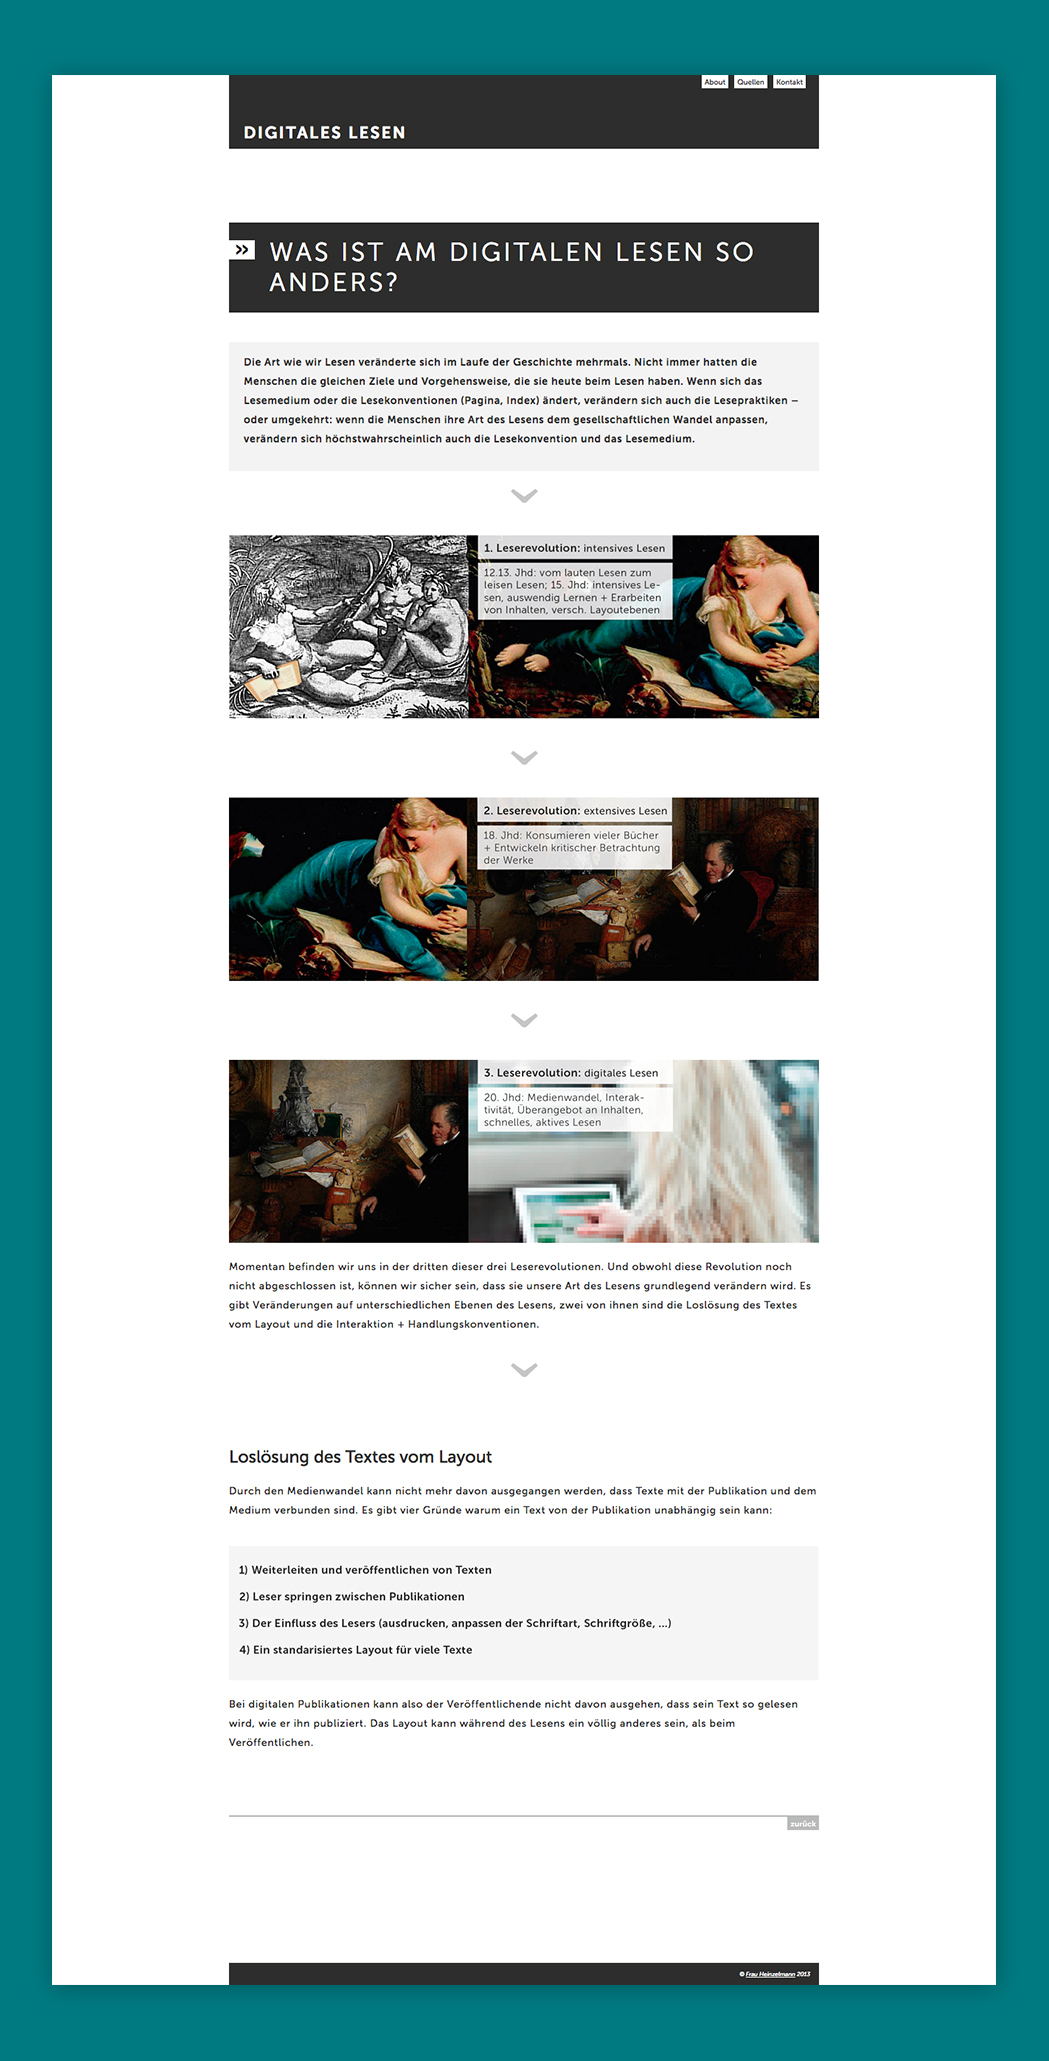 MaritaHeinzelmann_UX_UI_Design_Digitales_Lesen_Digital_Reading2